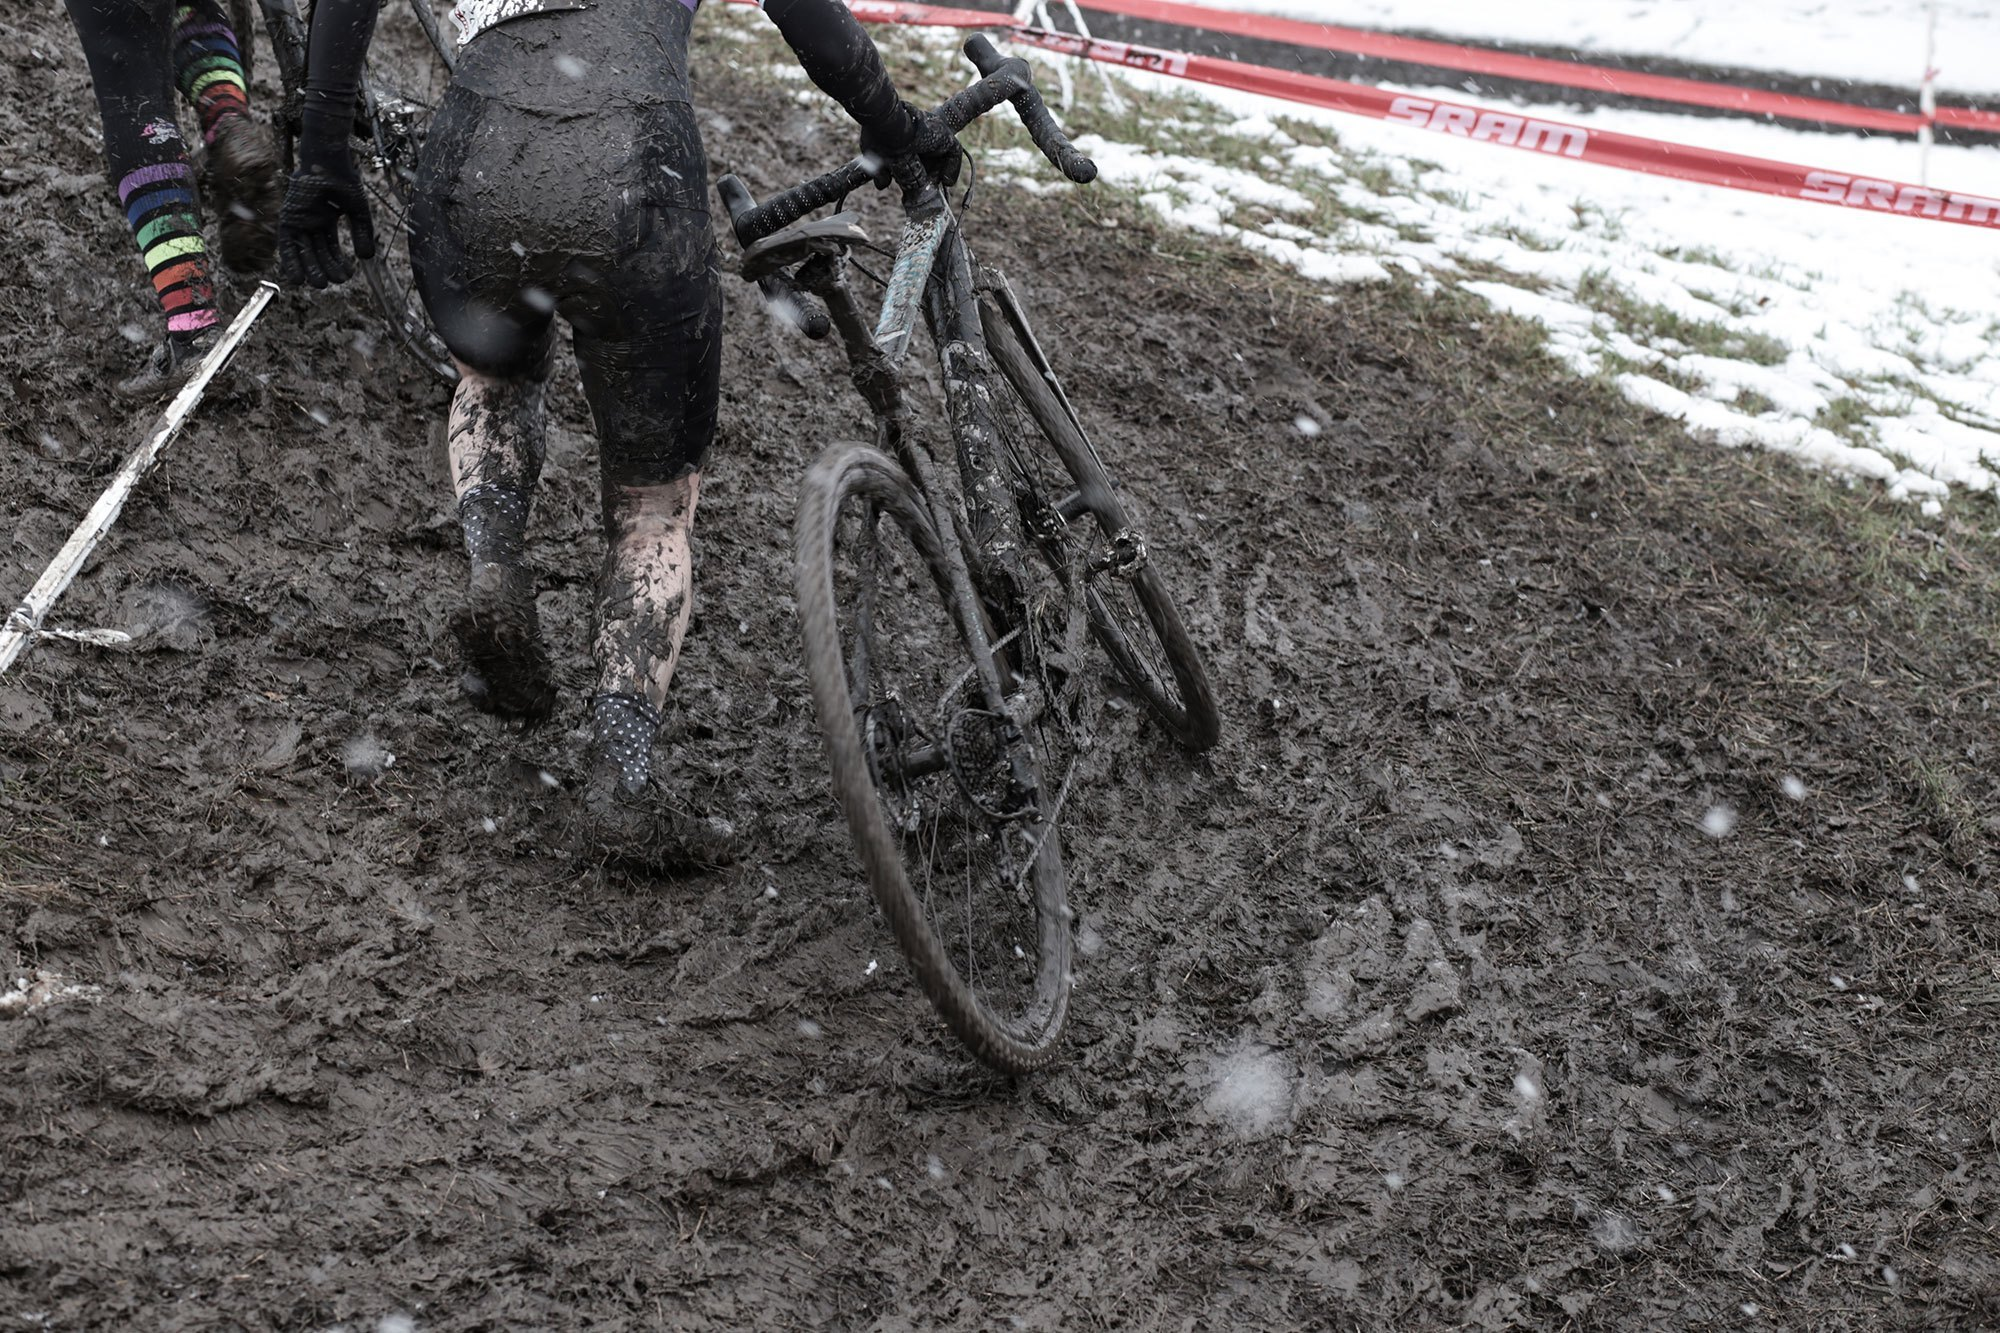 Cyclocross Training conditions